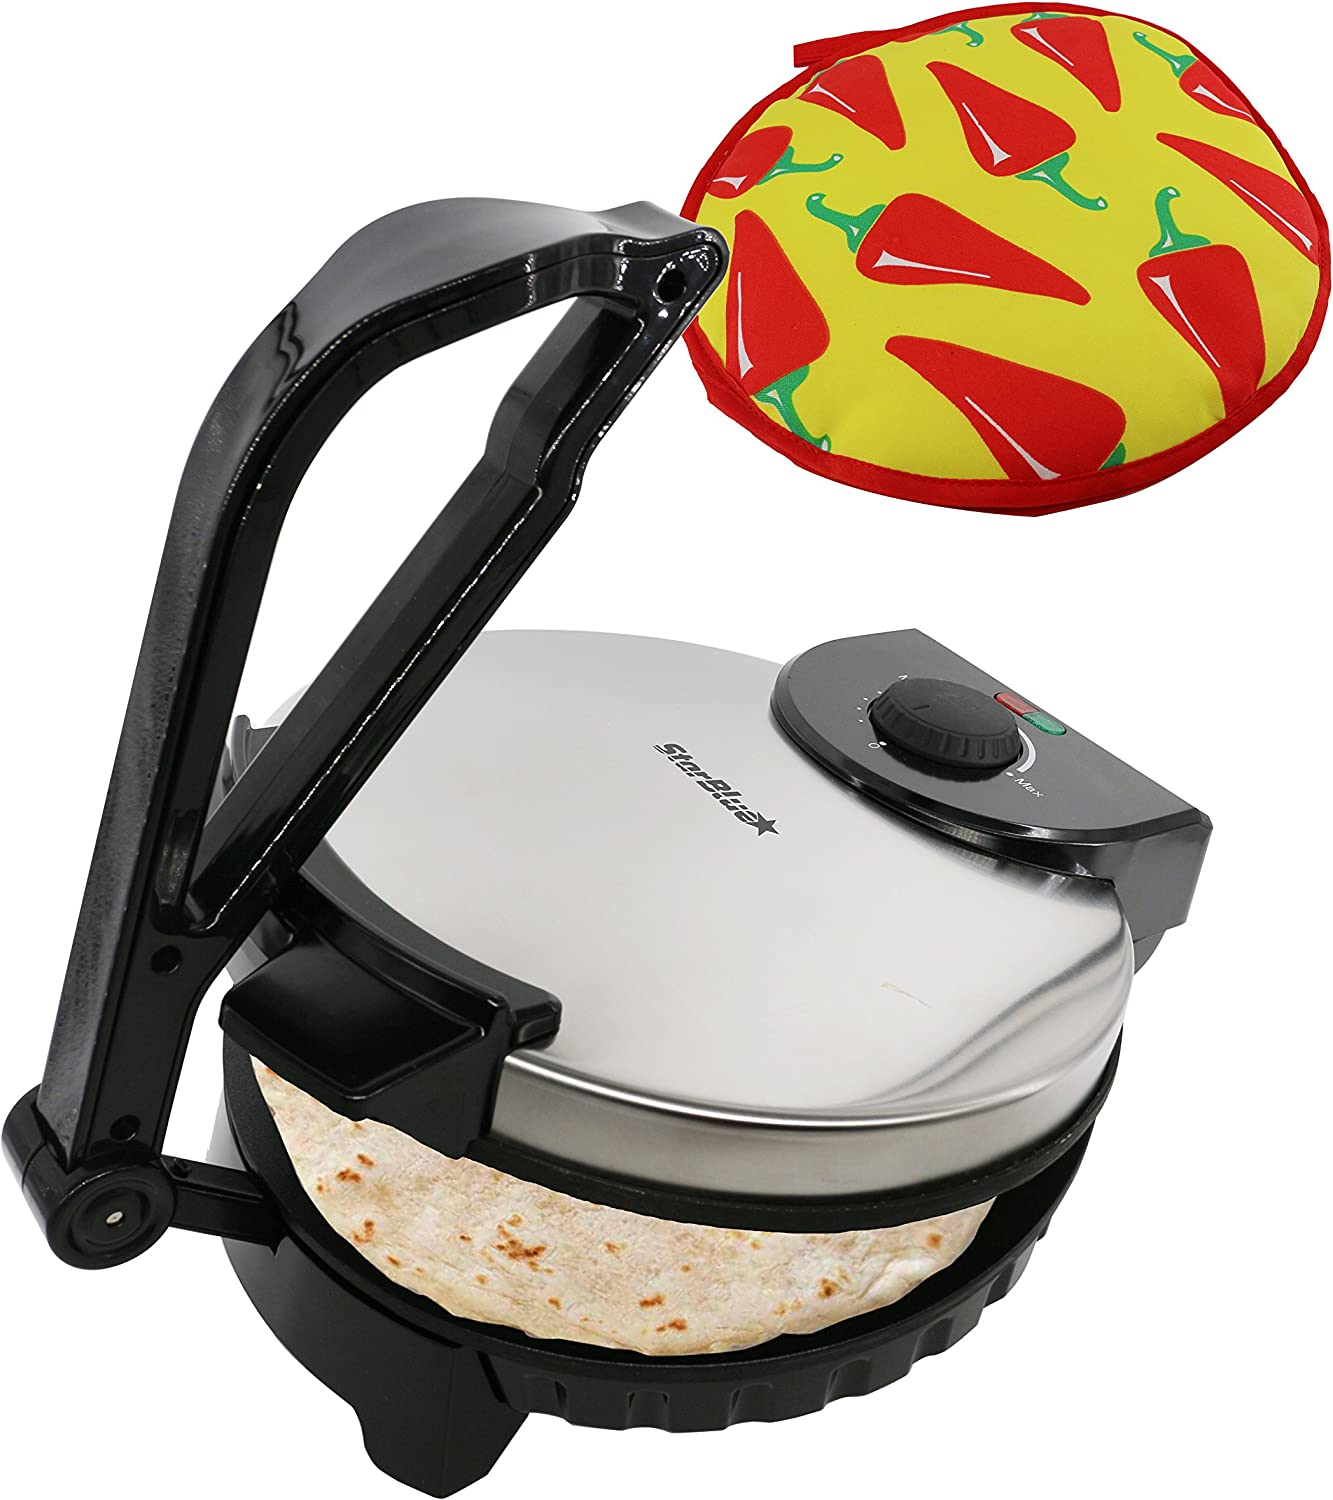 10inch Roti Maker by StarBlue with FREE Roti Warmer - The automatic Stainless Steel Non-Stick Electric machine to make Indian style Chapati, Tortilla, Roti AC 120V 60Hz 1200W